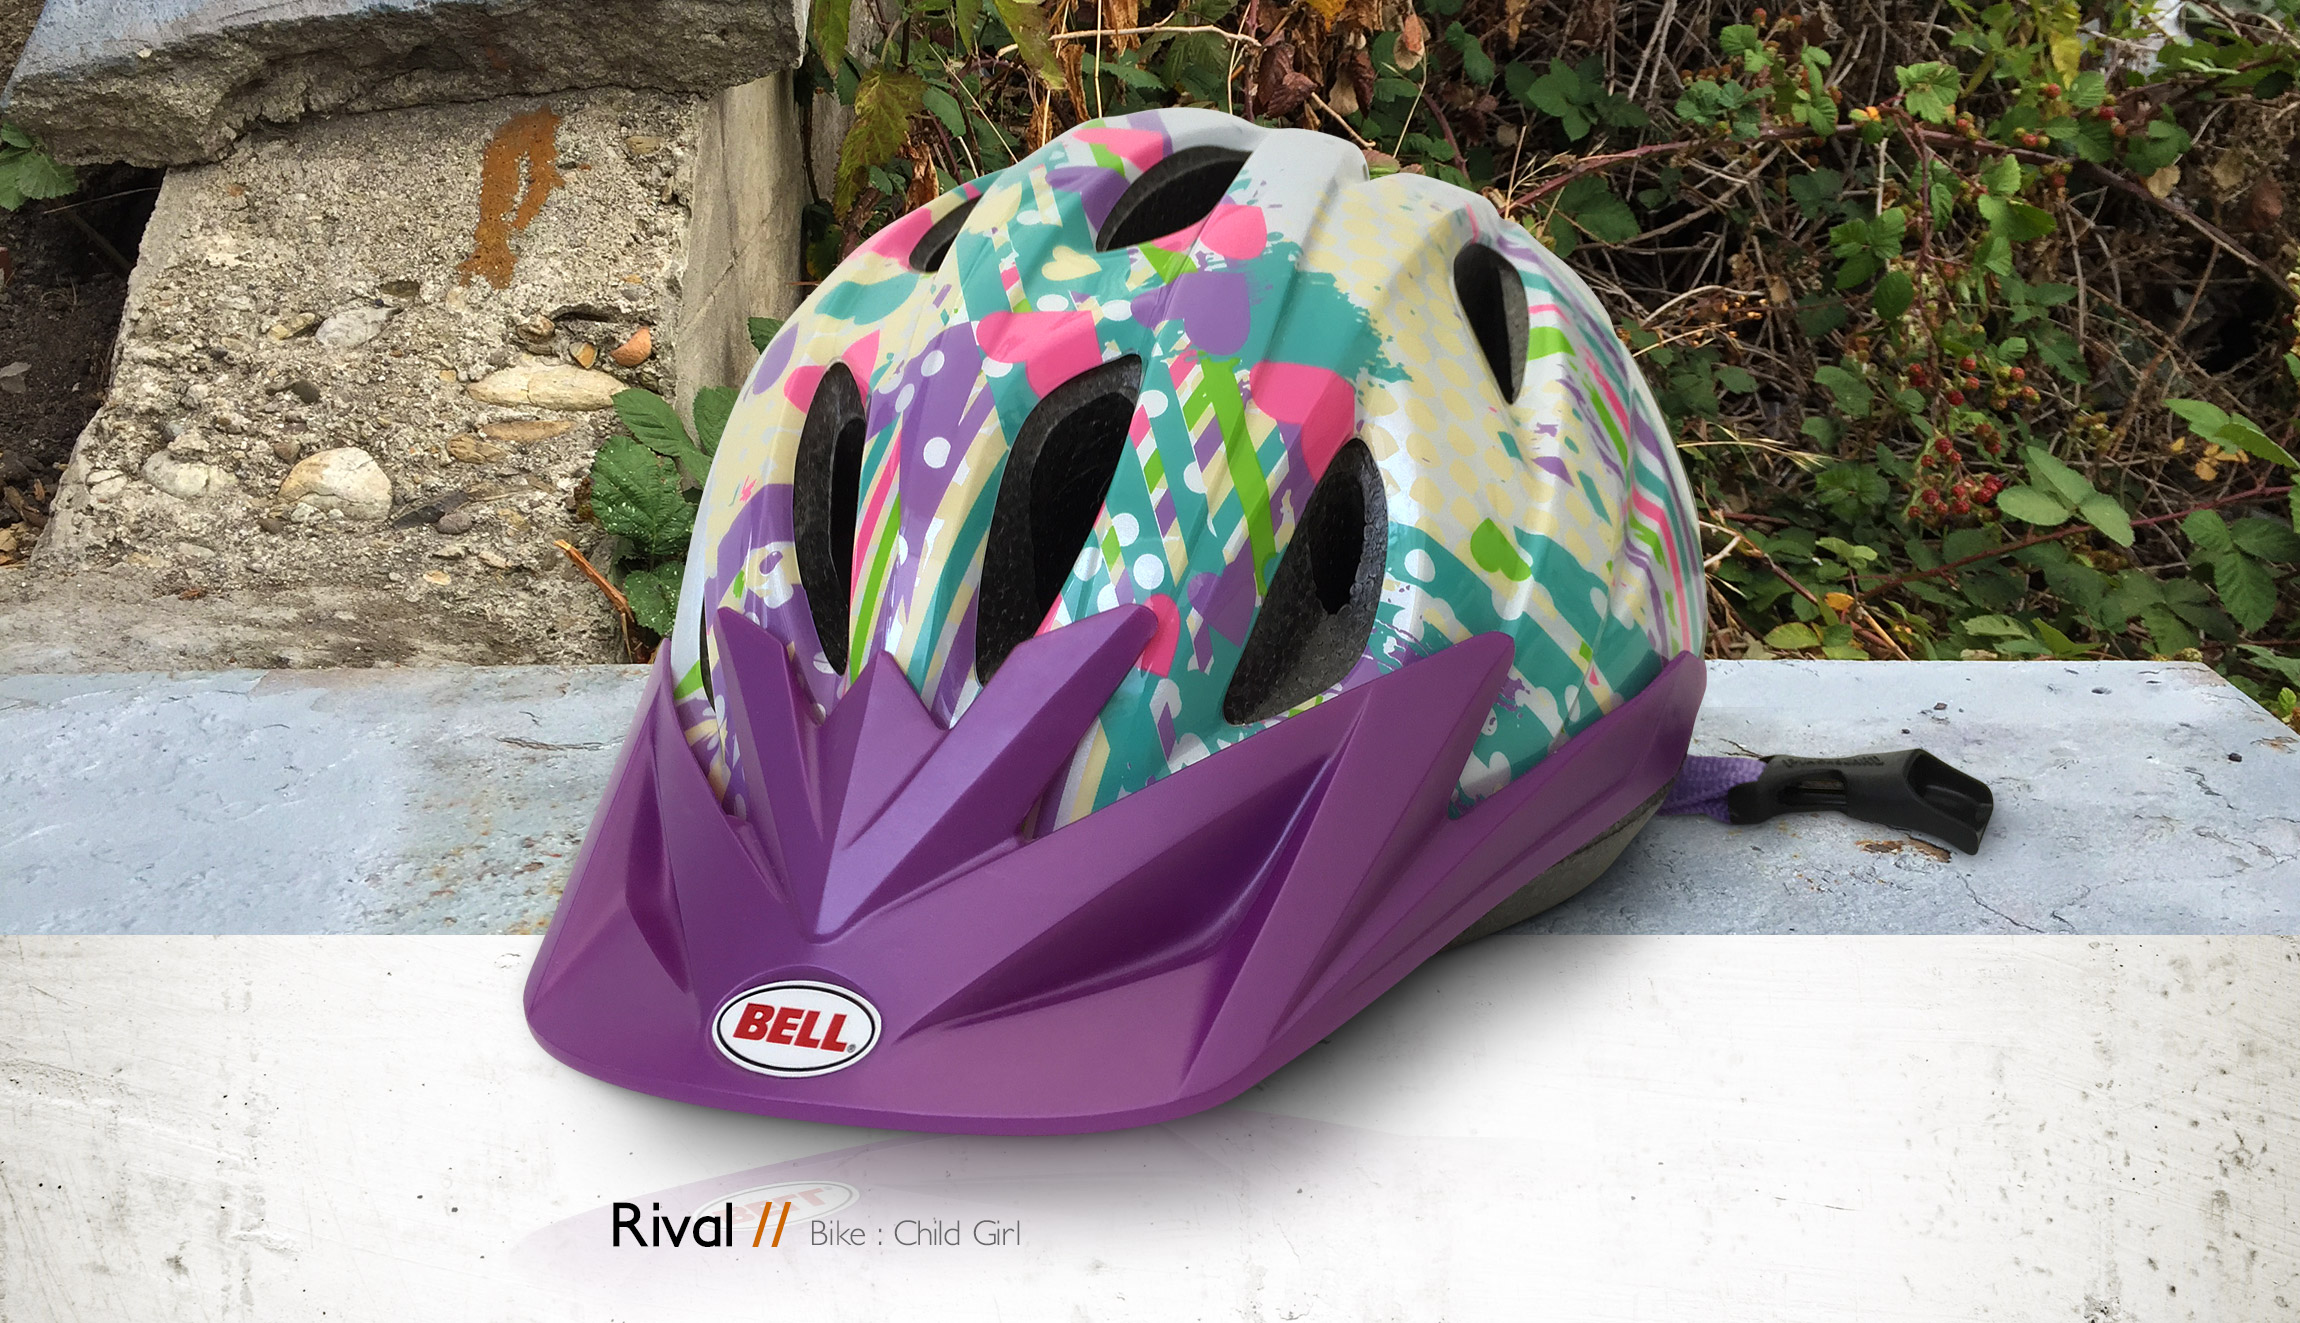 Bell Helmets Rival youth girl bike helmet pattern design - Graphic Regime